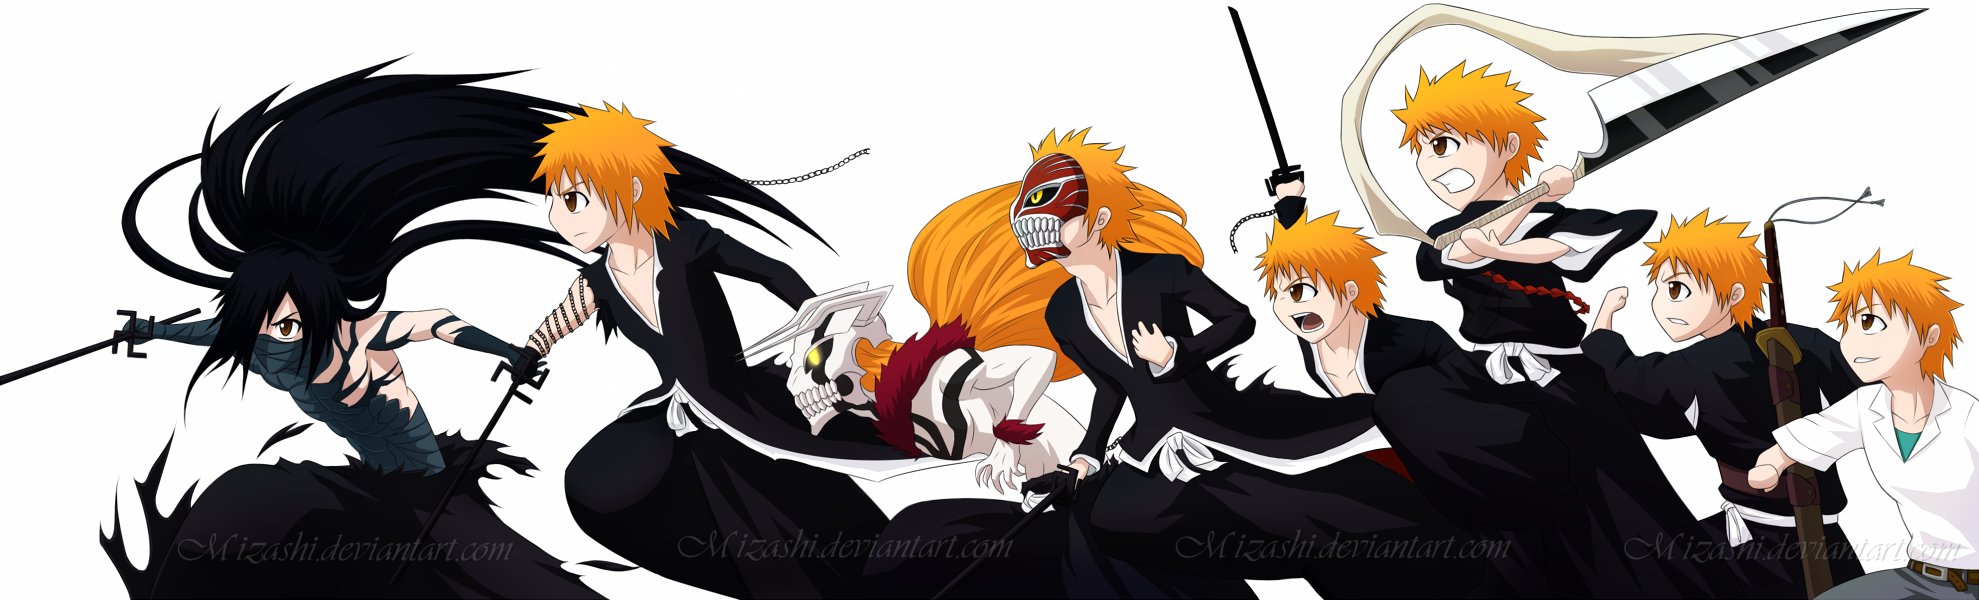 Heres Ichigos Evolution From The Very First Episode To Moment He Obtained Final Getsuga Tenshou